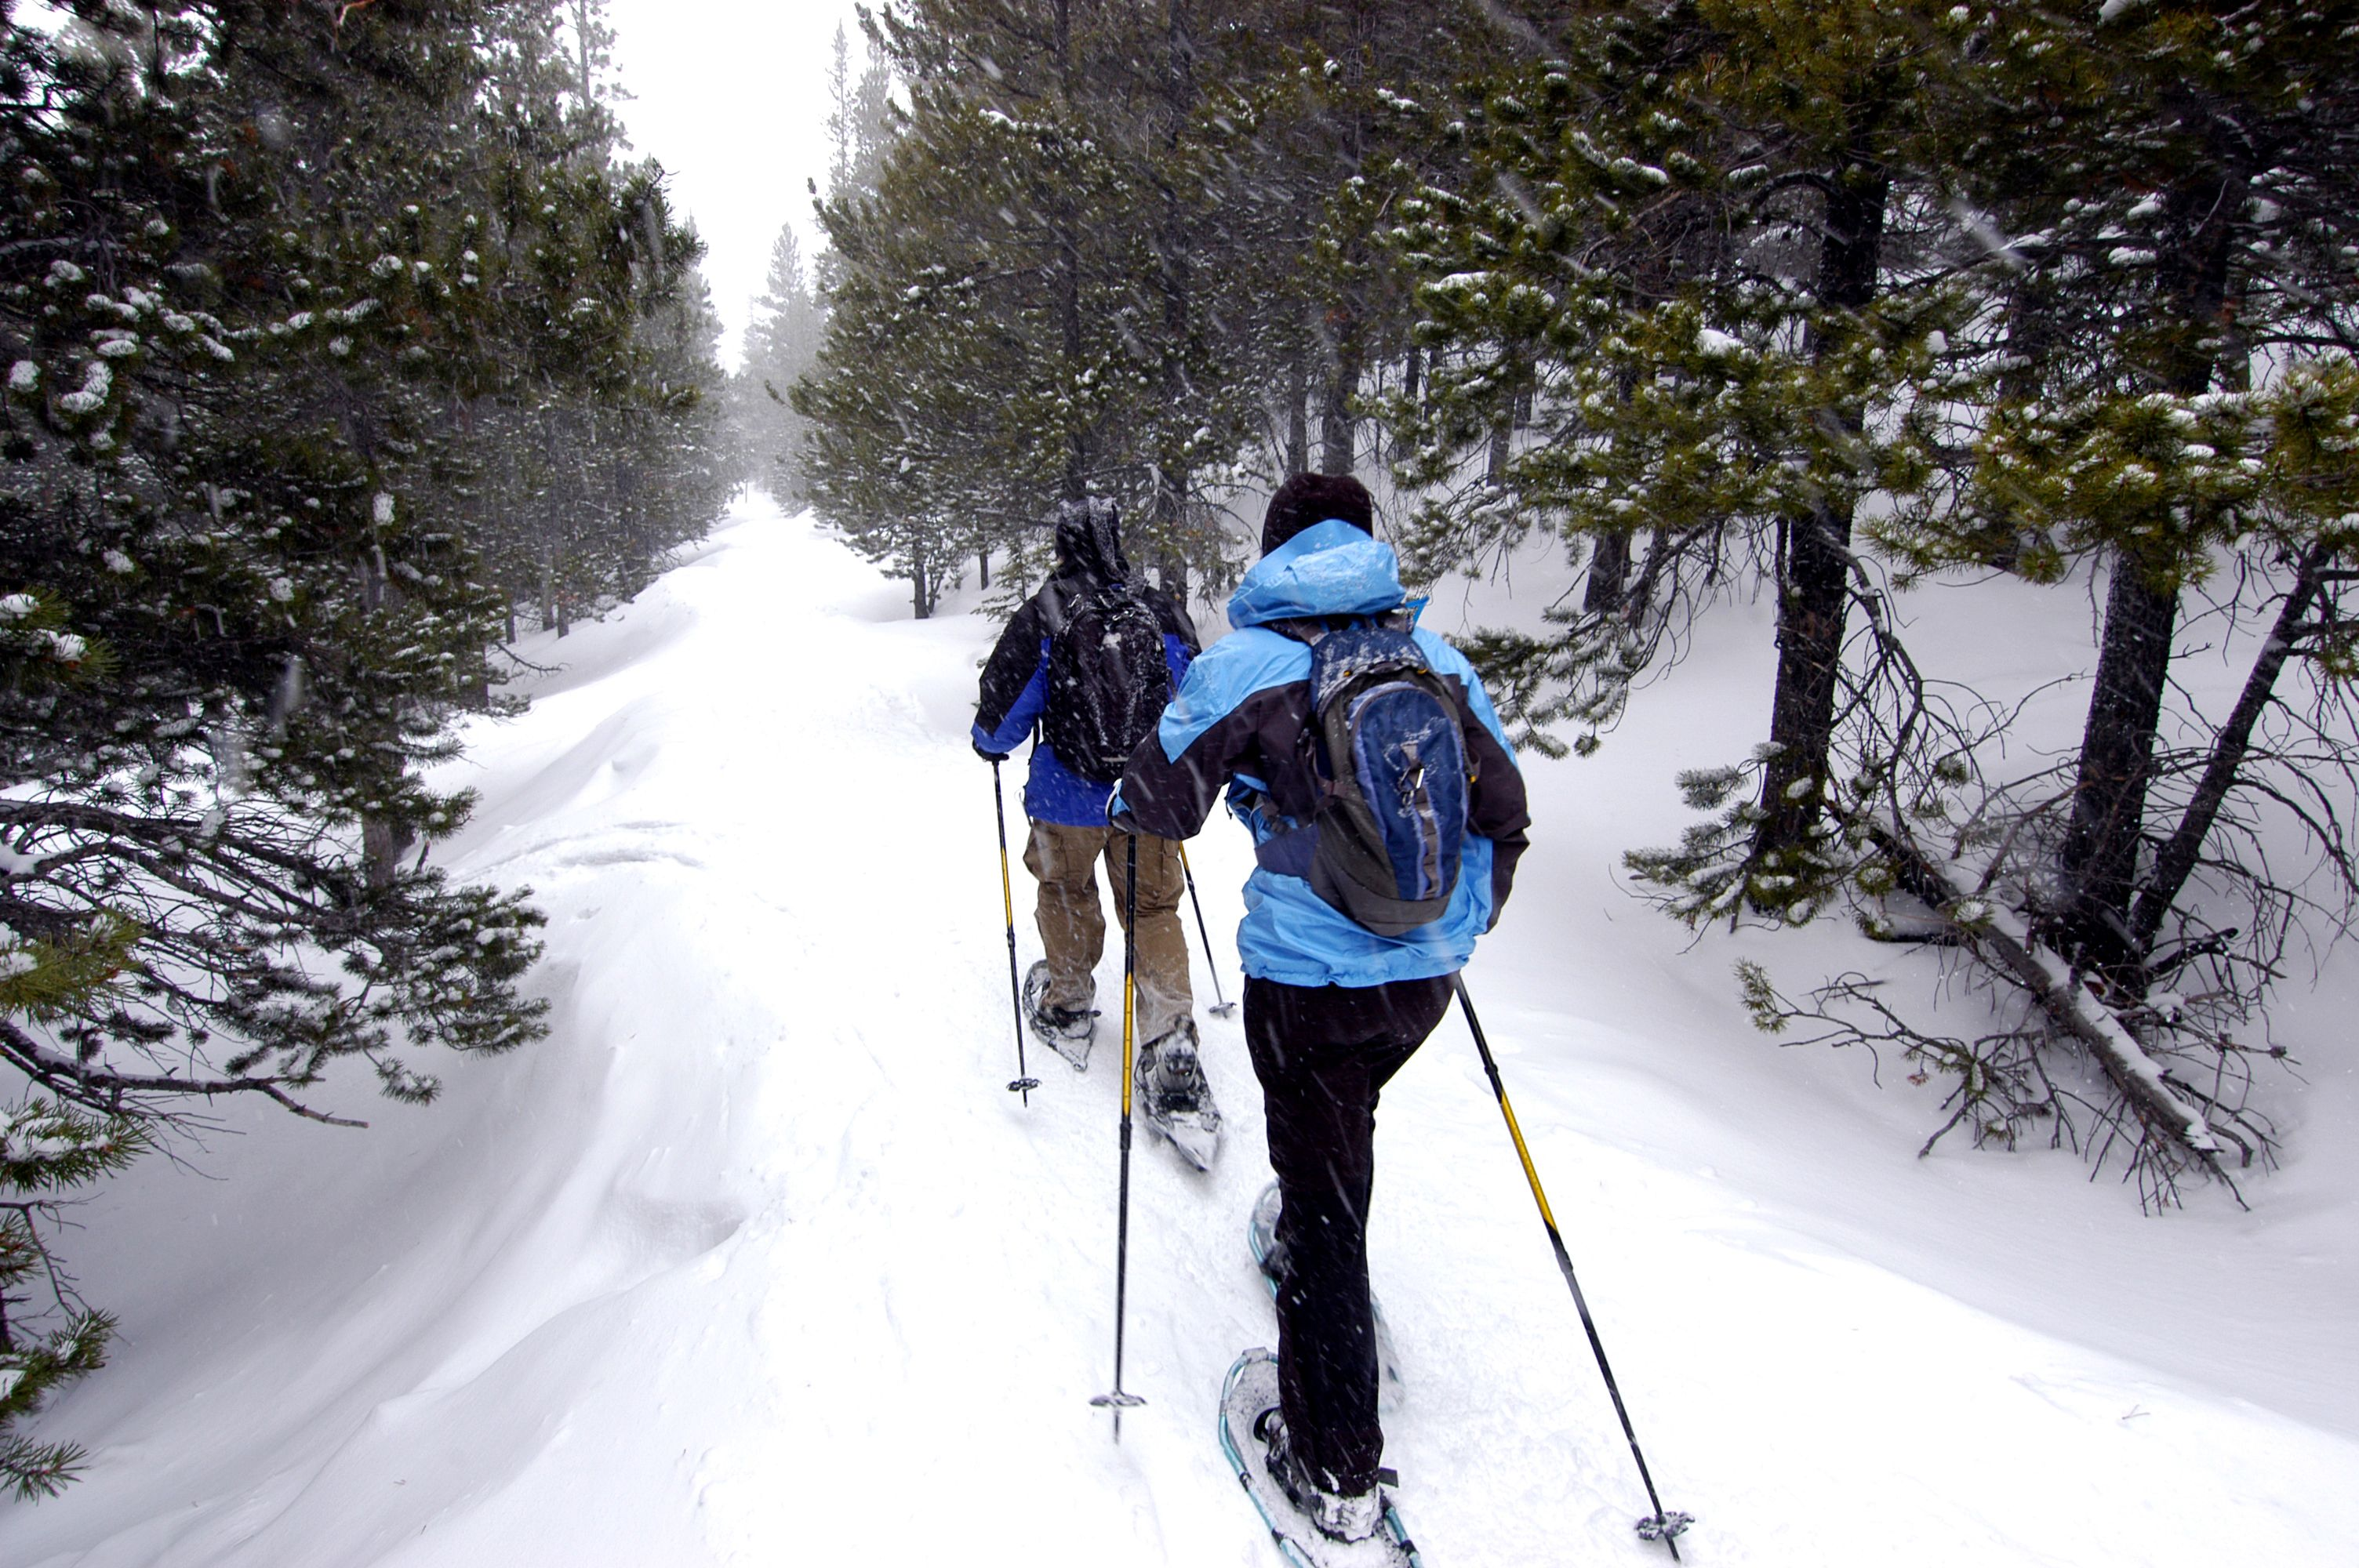 3 Full Moon Snowshoe Hikes Announced In Midway Snow Shoes Winter Hiking Winter Recreation